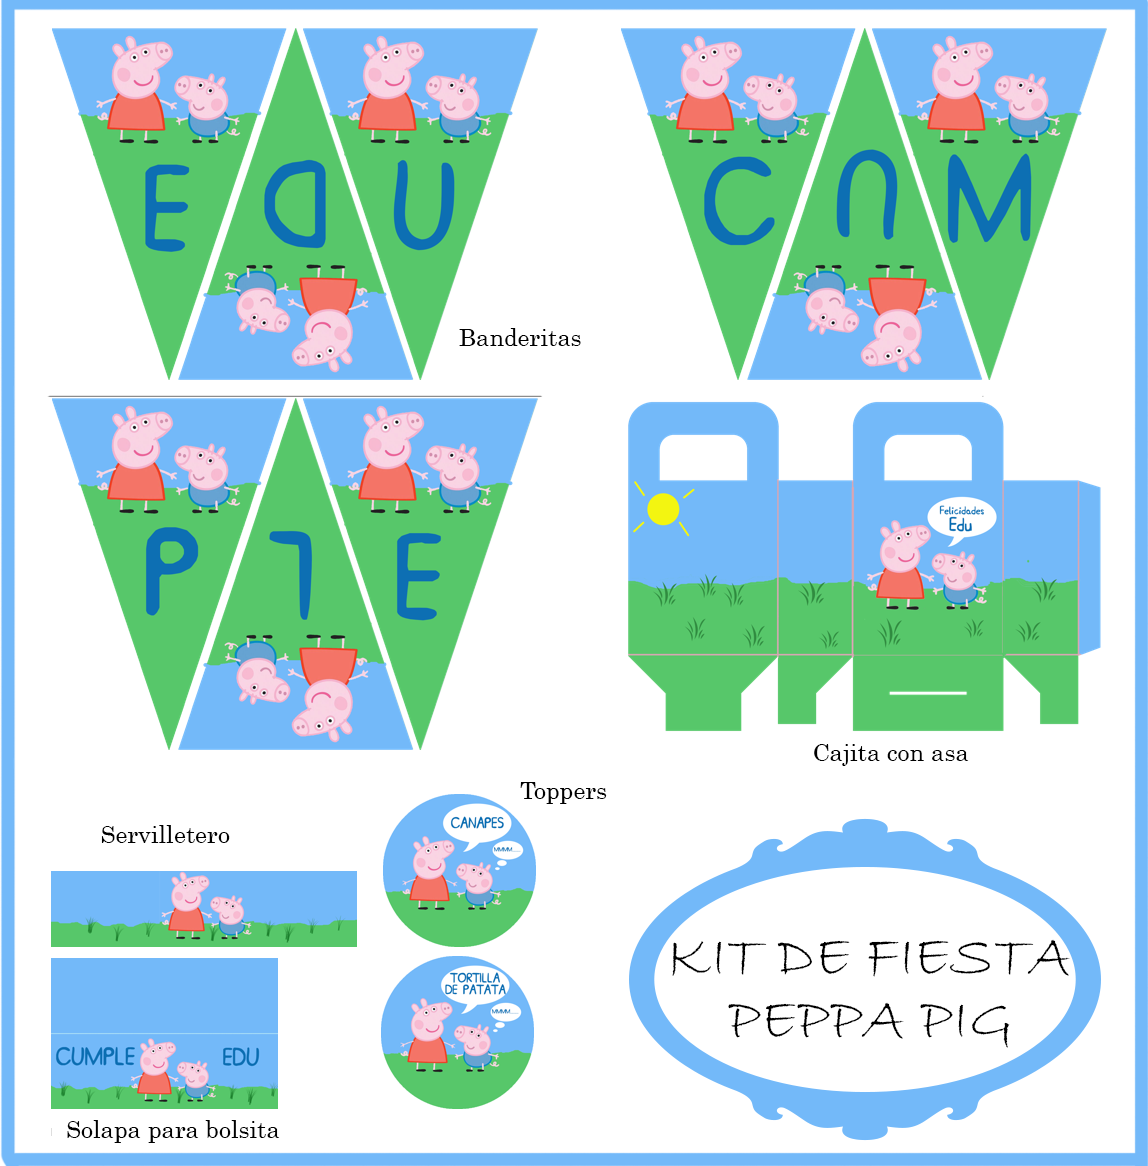 KIT DE FIESTA PEPPA PIG Y GEORGE